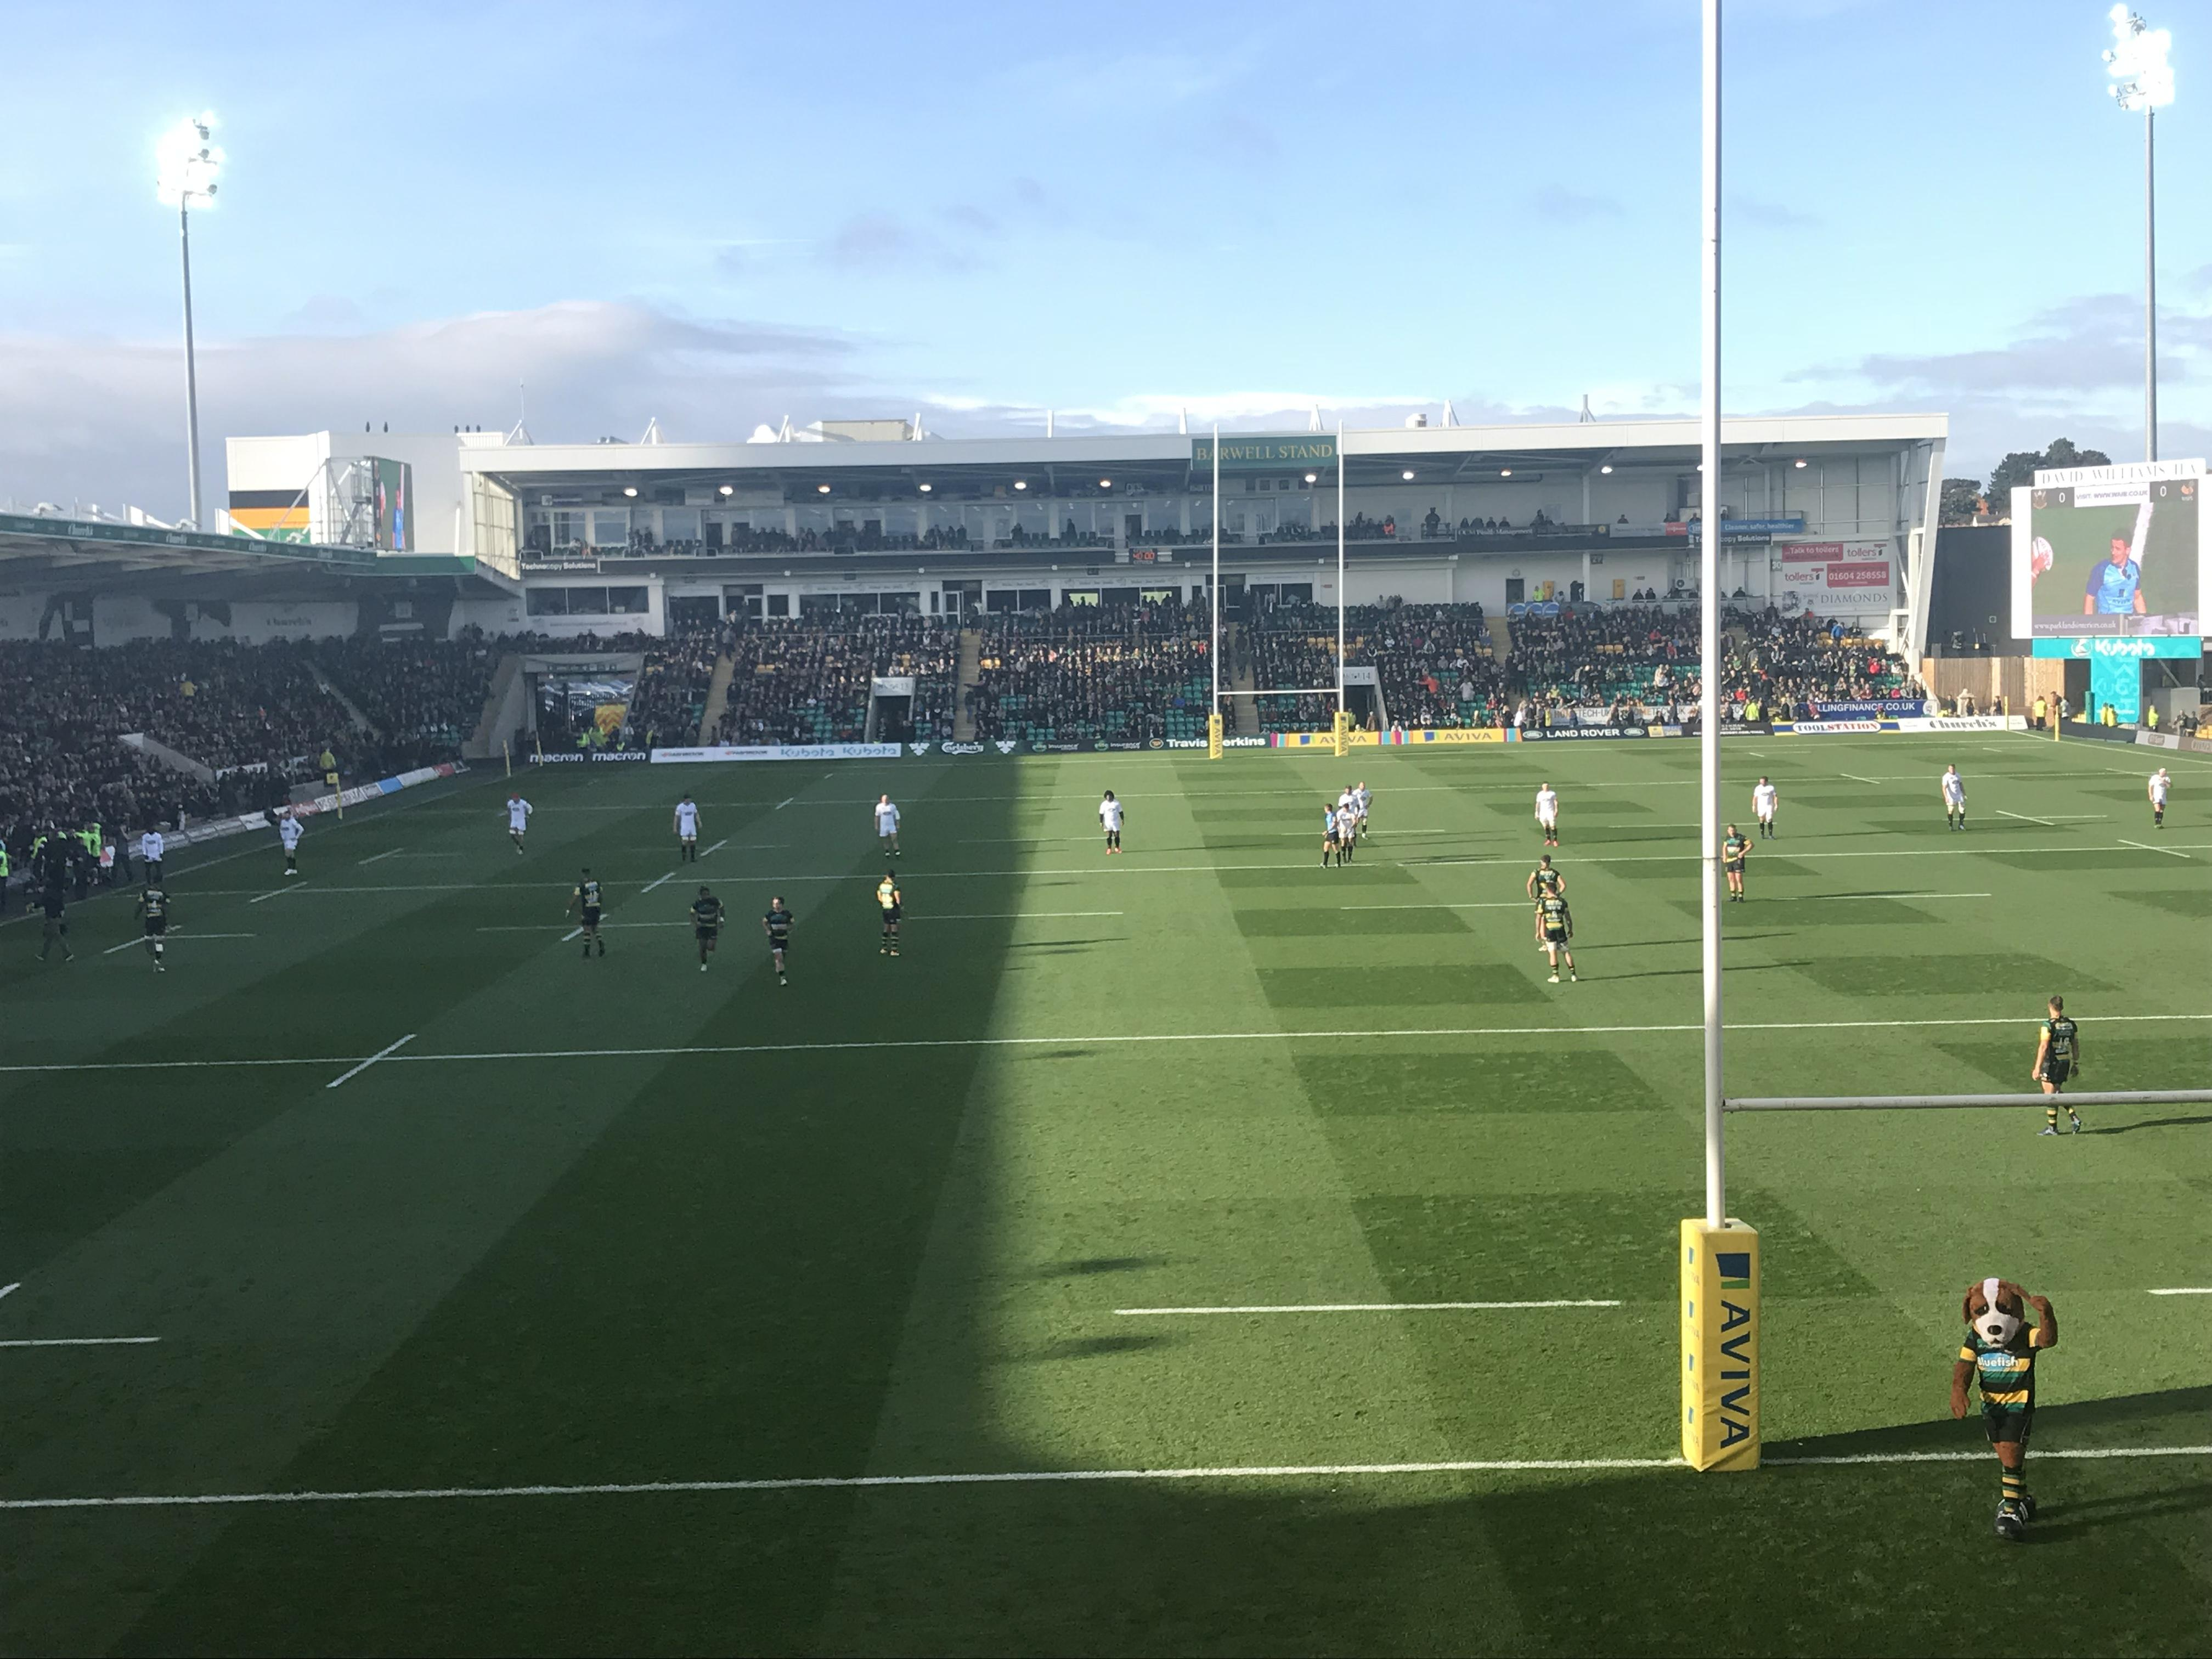 Franklin's Gardens Section Elite Insurance Stsnd. Block 1 Row S Seat 407